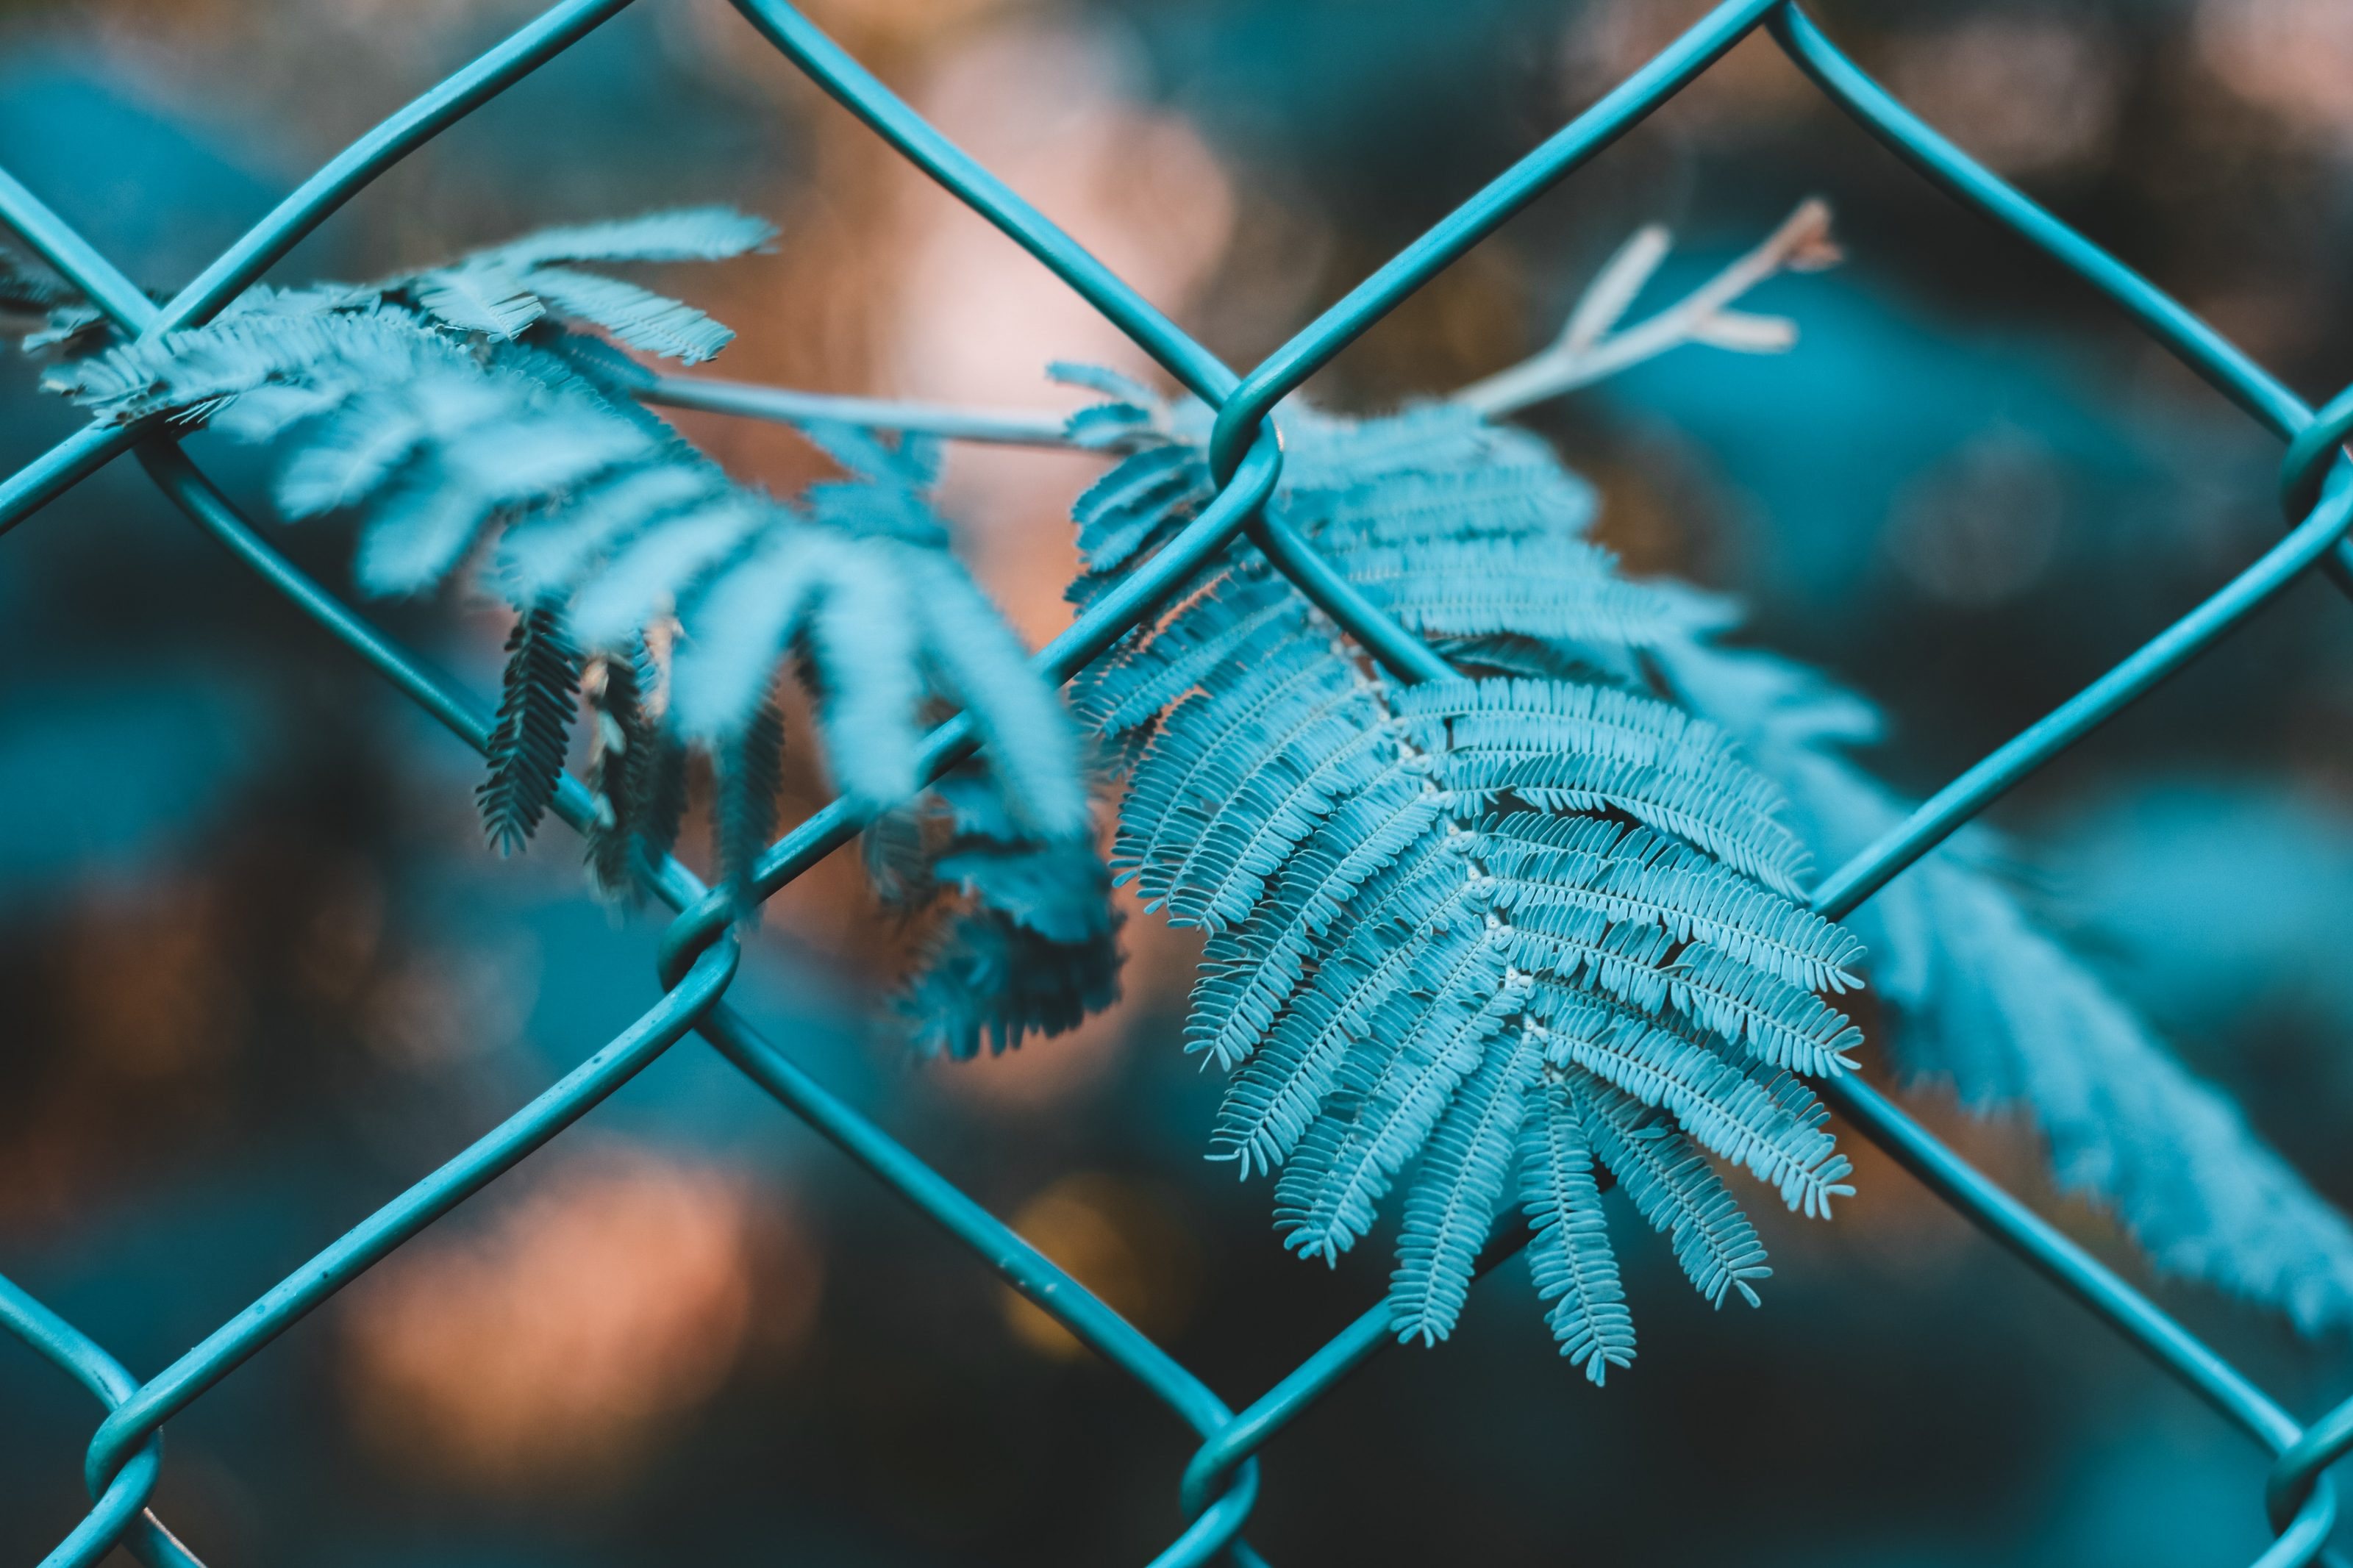 chain-link-fence-fence-leaves-2166641